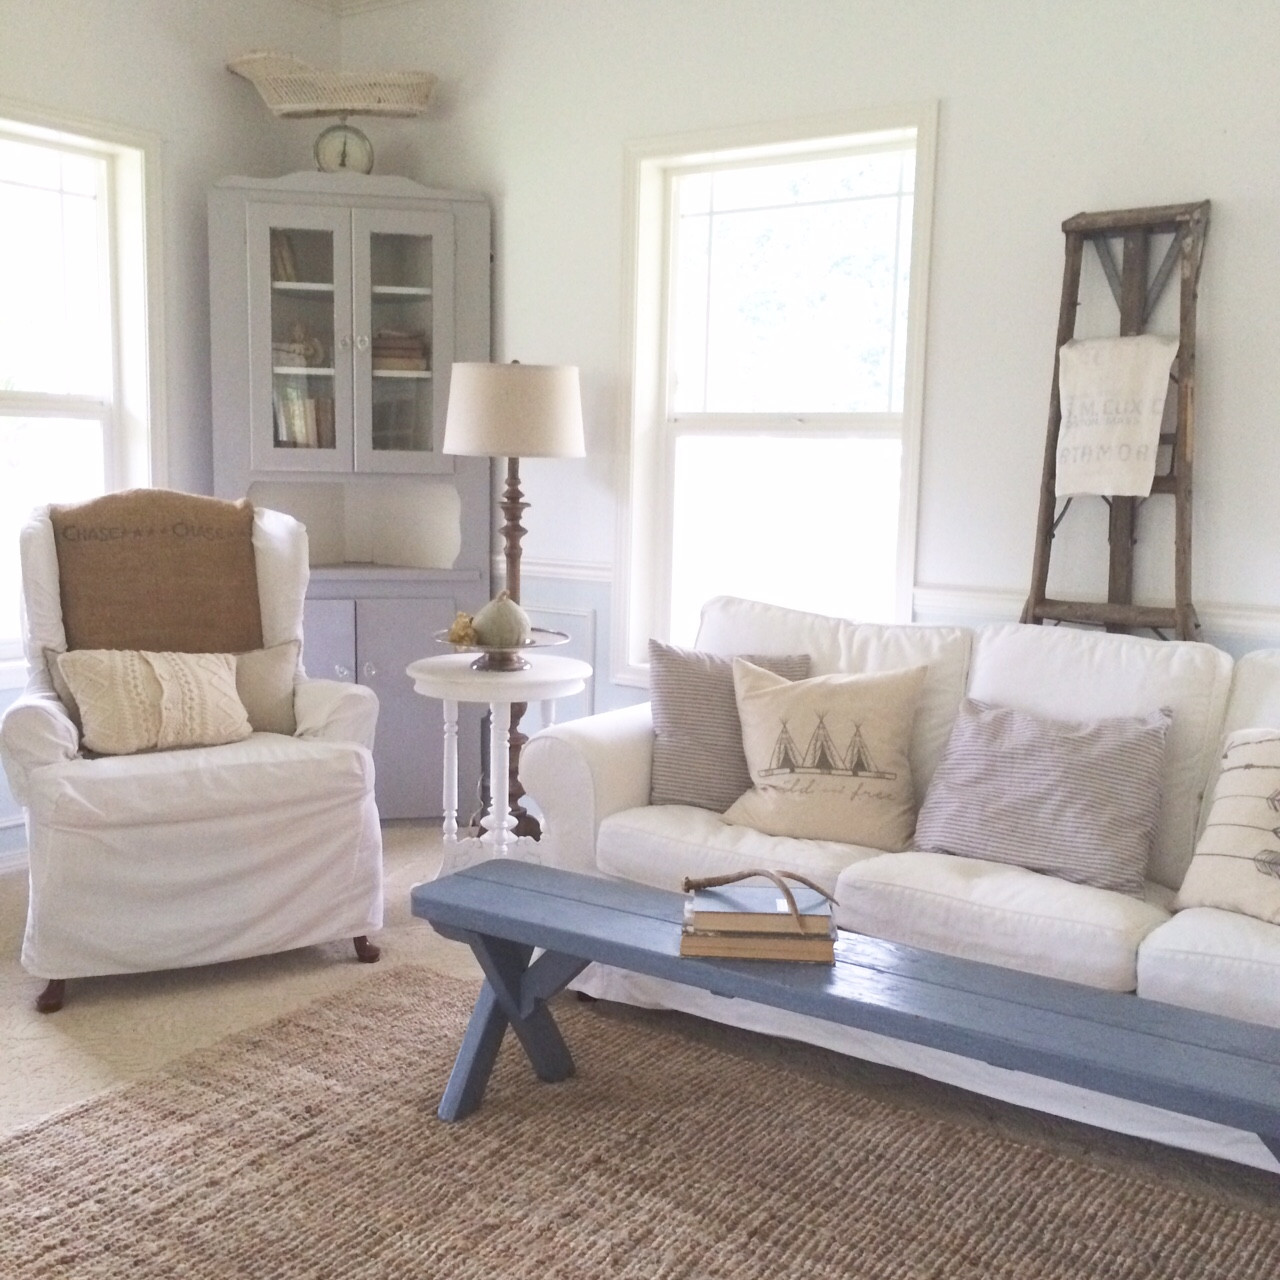 Best ideas about Farmhouse Style Living Room Furniture . Save or Pin Little Farmstead Creating a Farmhouse Style Living Room Now.